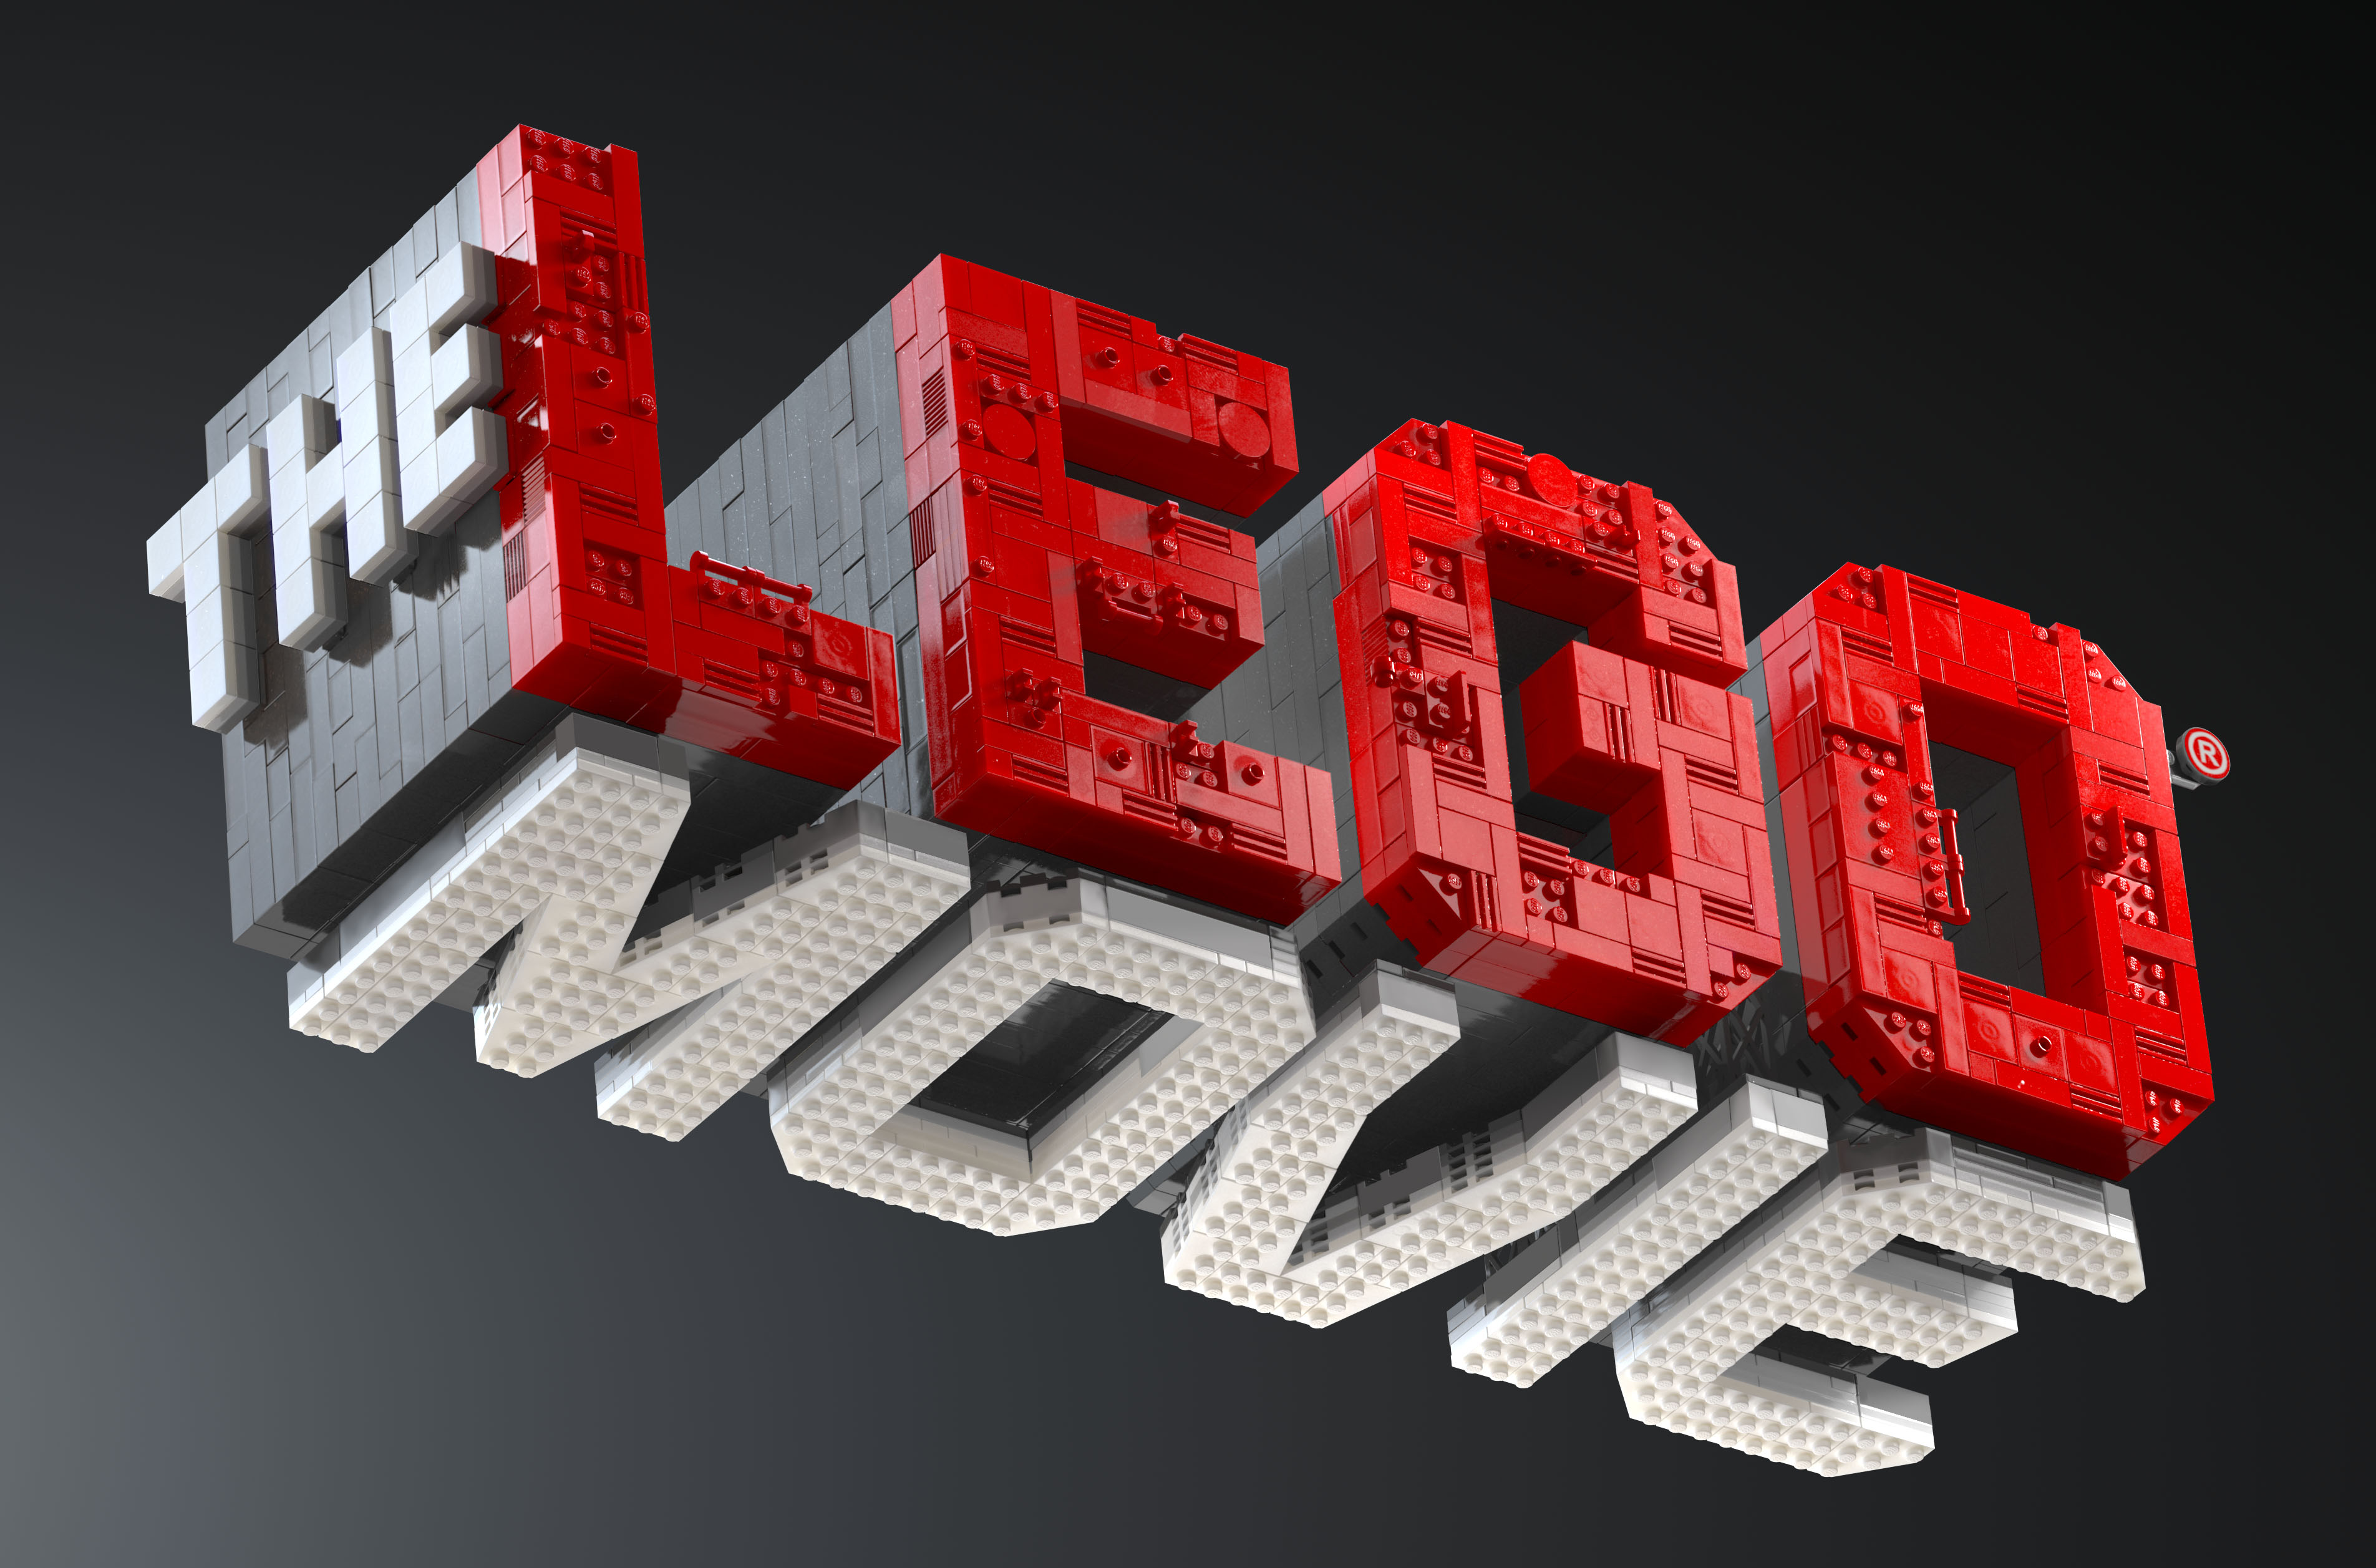 The Lego Movie Trailer Features Batman, -The Lego Movie trailer features Batman, Superman, Ninja Turtles, and more!-12